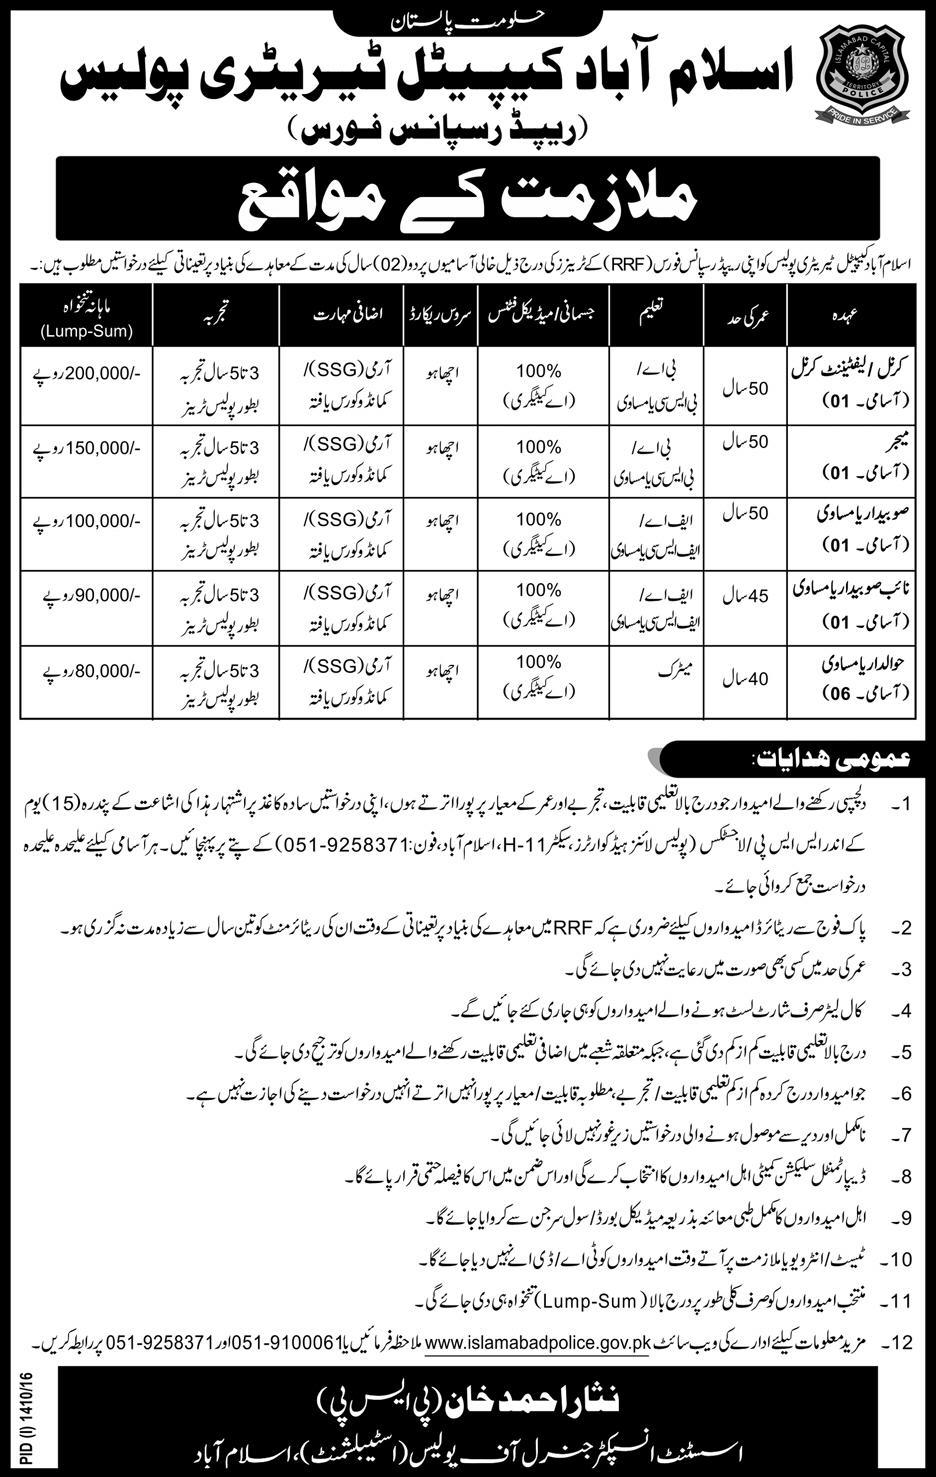 Recruitment of Retired Army Officers in Islamabad Police